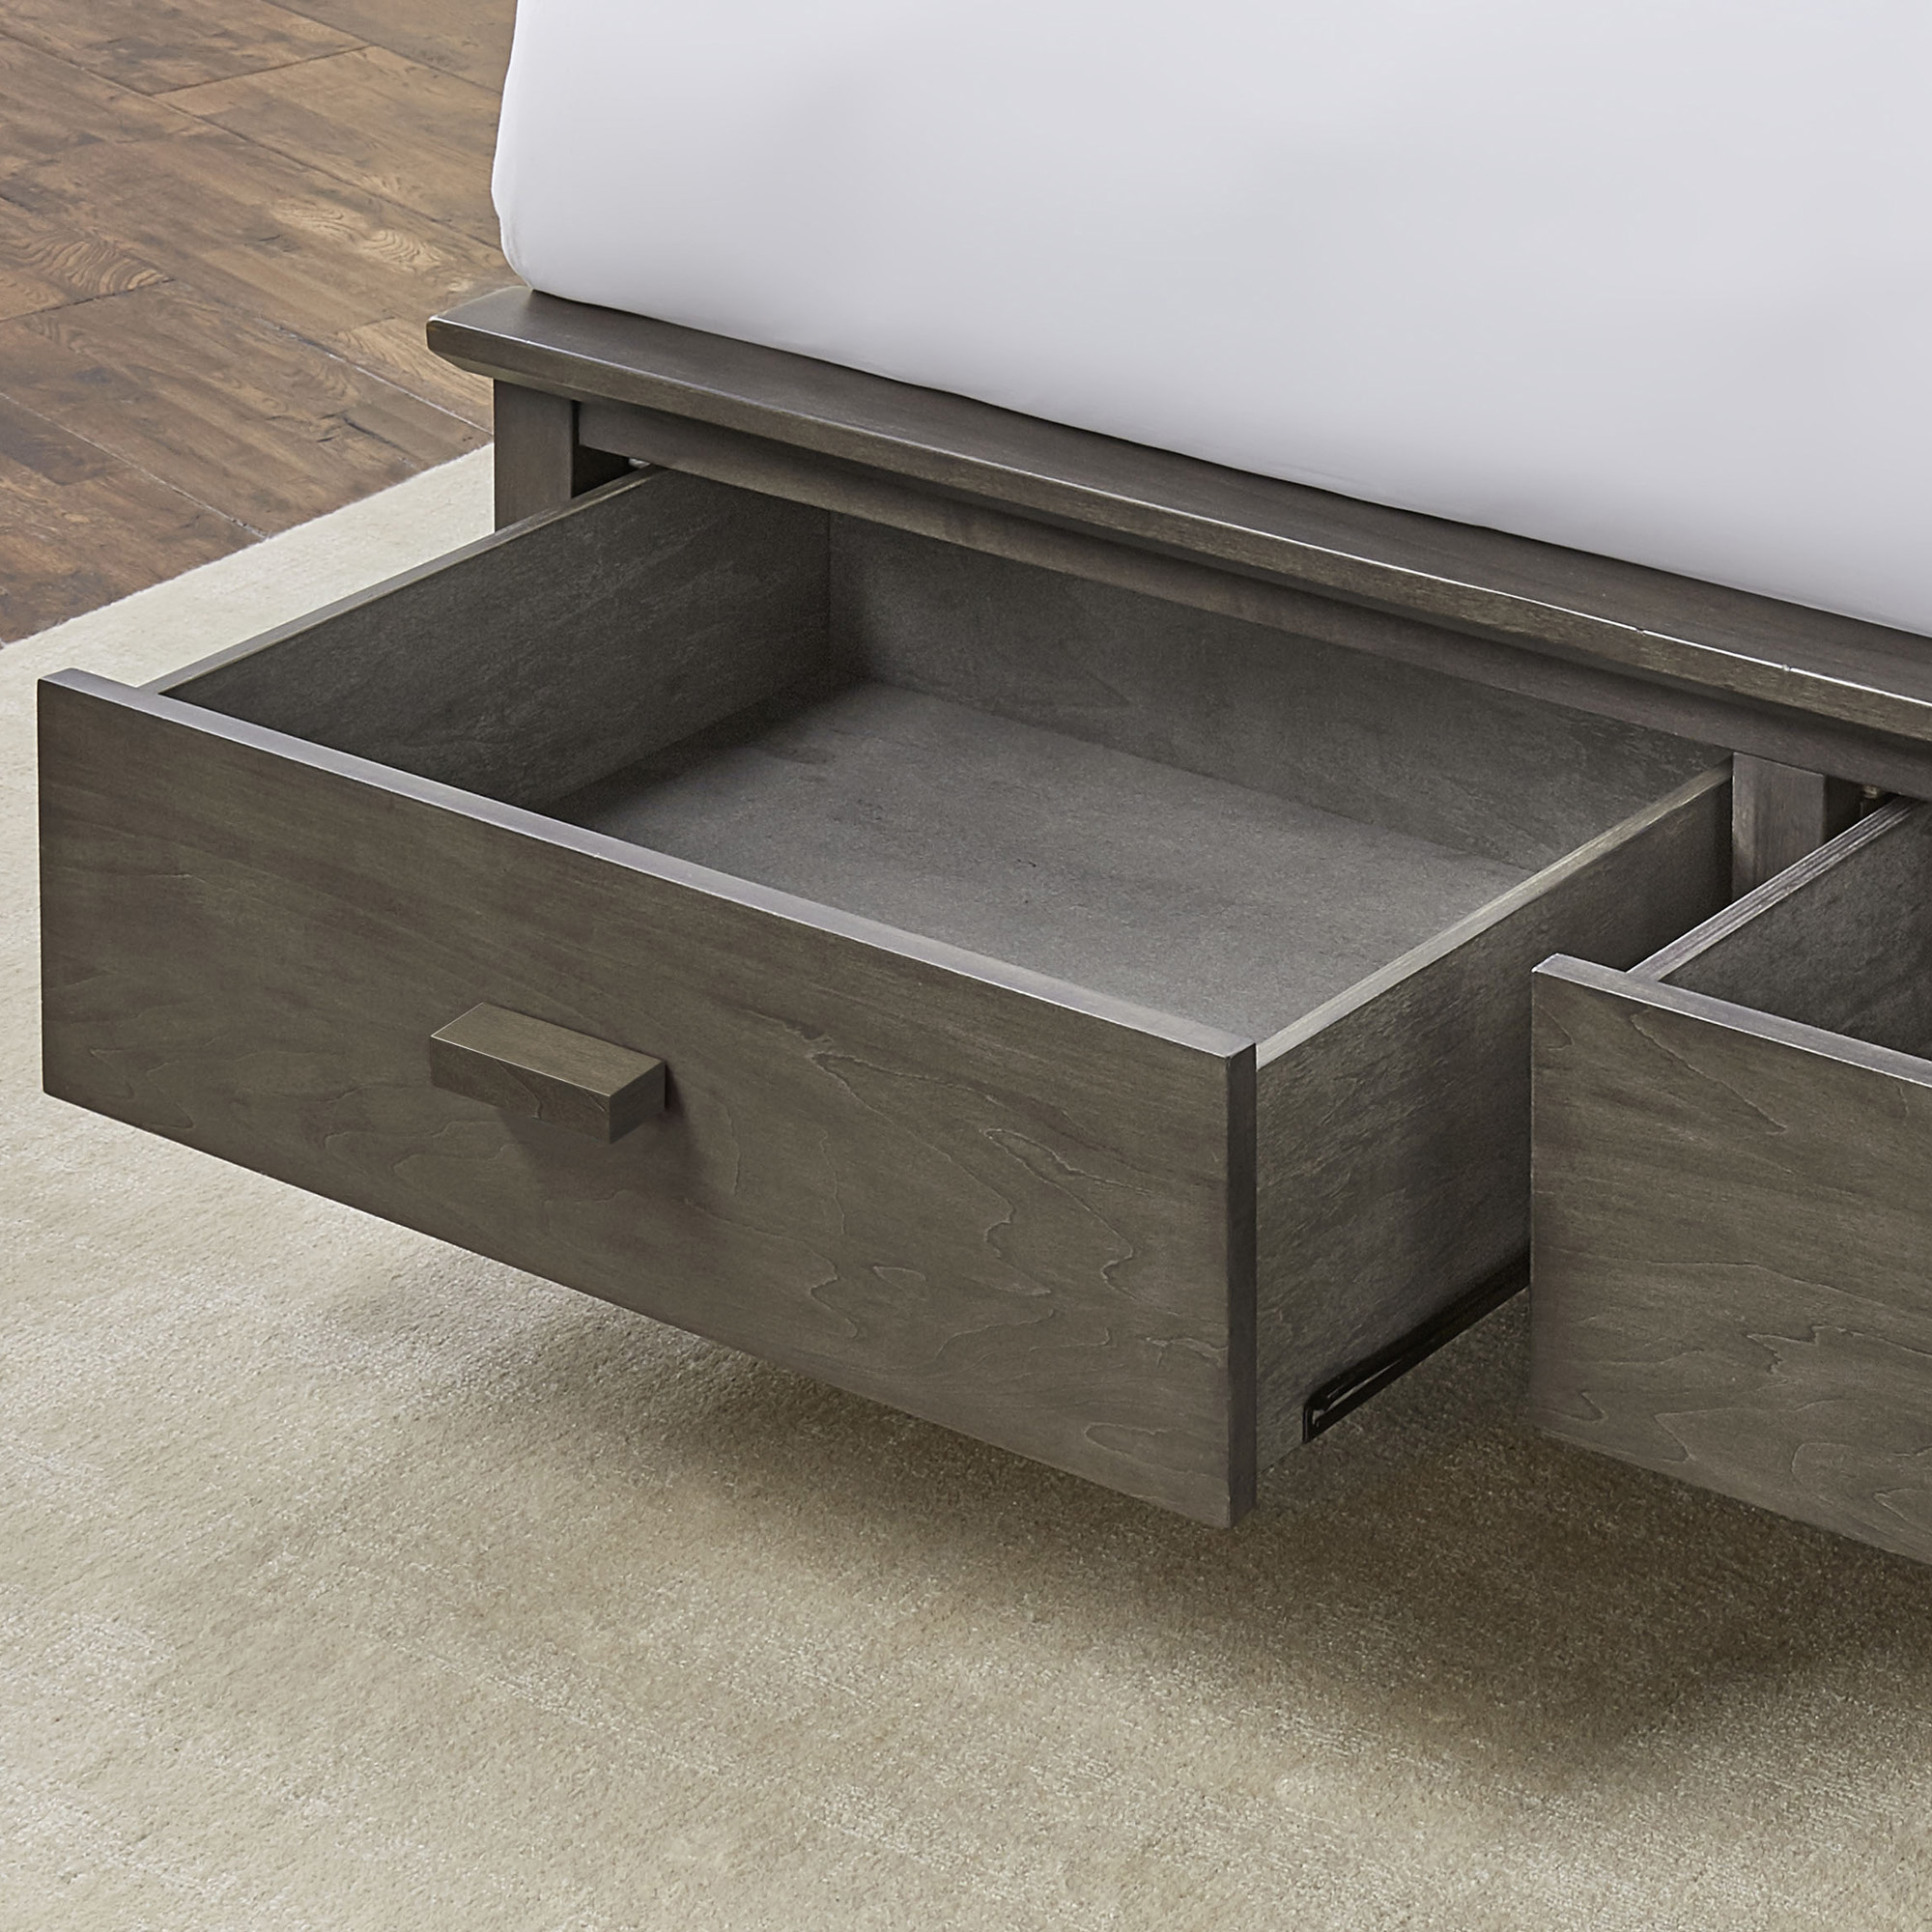 H&ton Storage Bed with Solid Wood Frame and and (2) Footboard Drawers California & B21167 in by Fashion Bed Group in Asheville NC - Hampton Storage ...